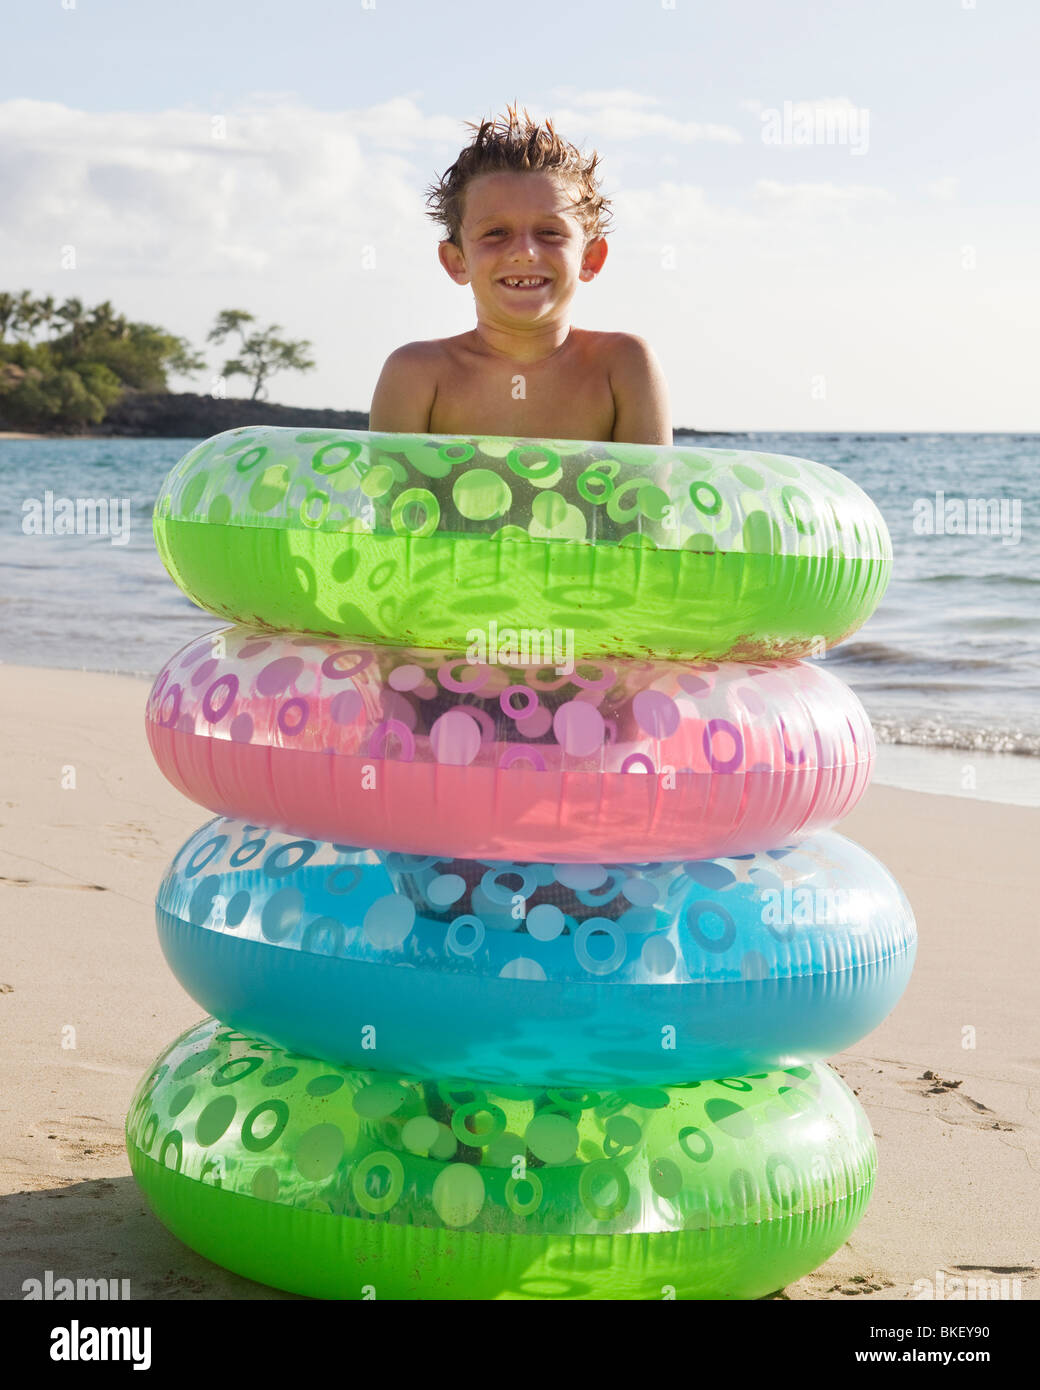 Boy surronded by stack of colorful inner tubes - Stock Image